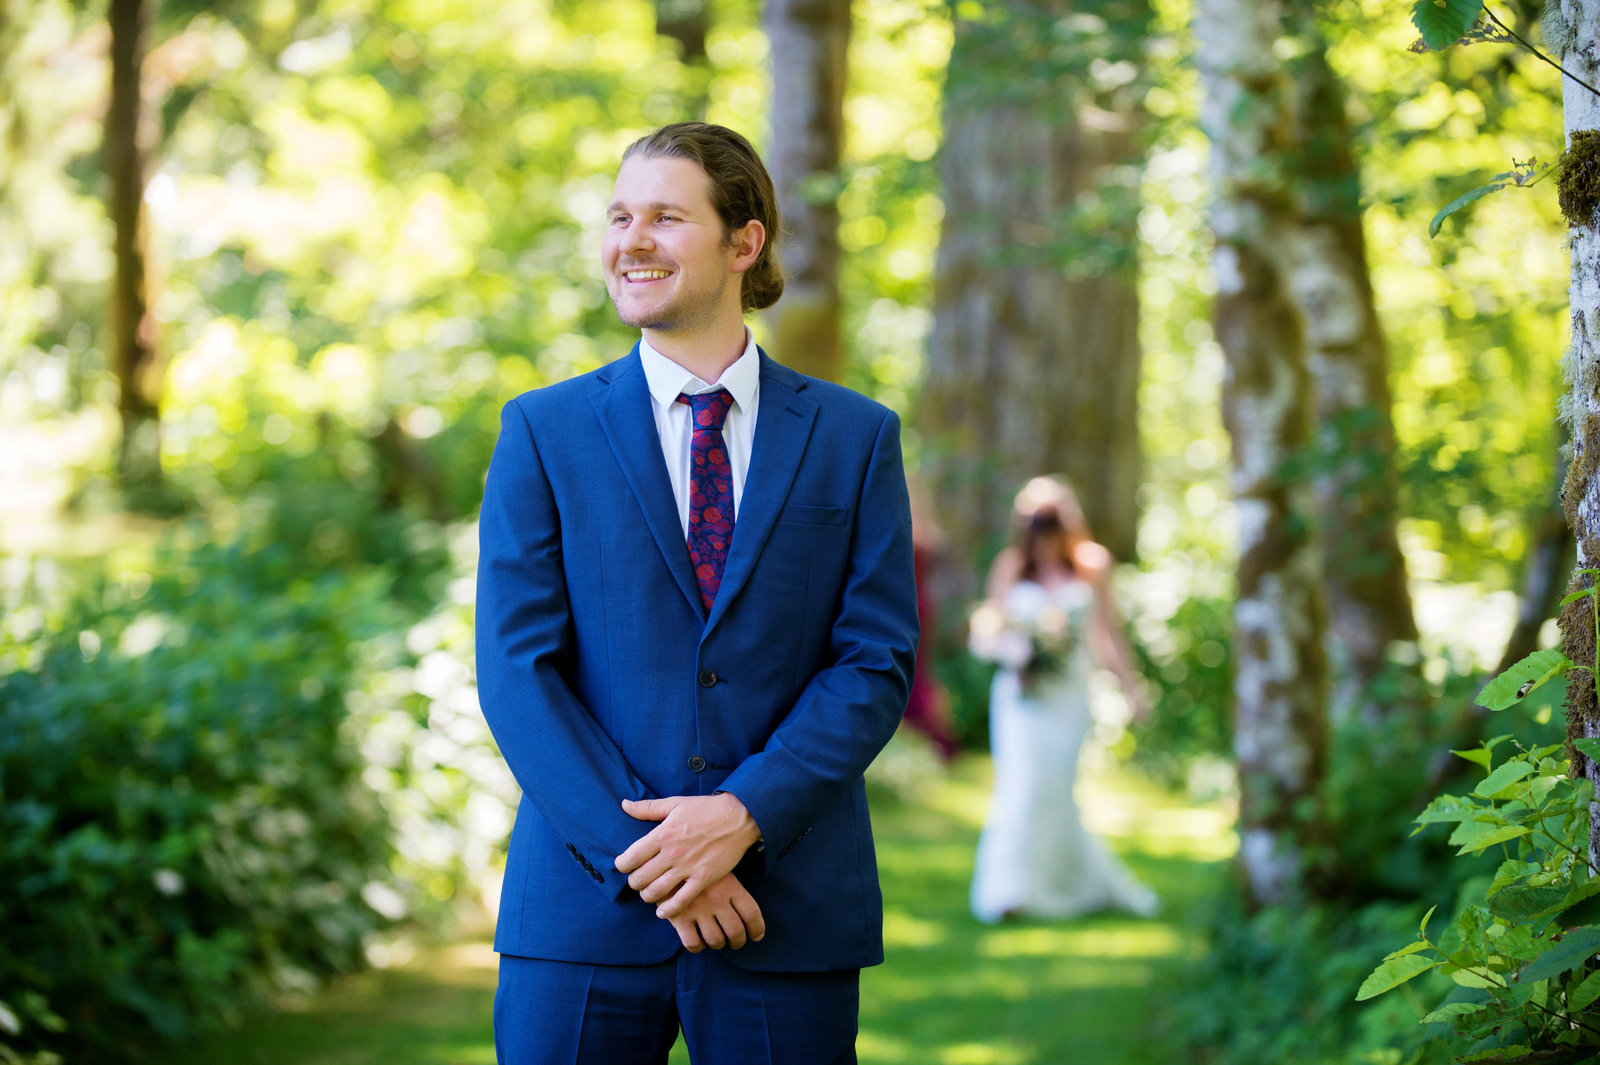 groom anxiously awaits seeing bride for the first time